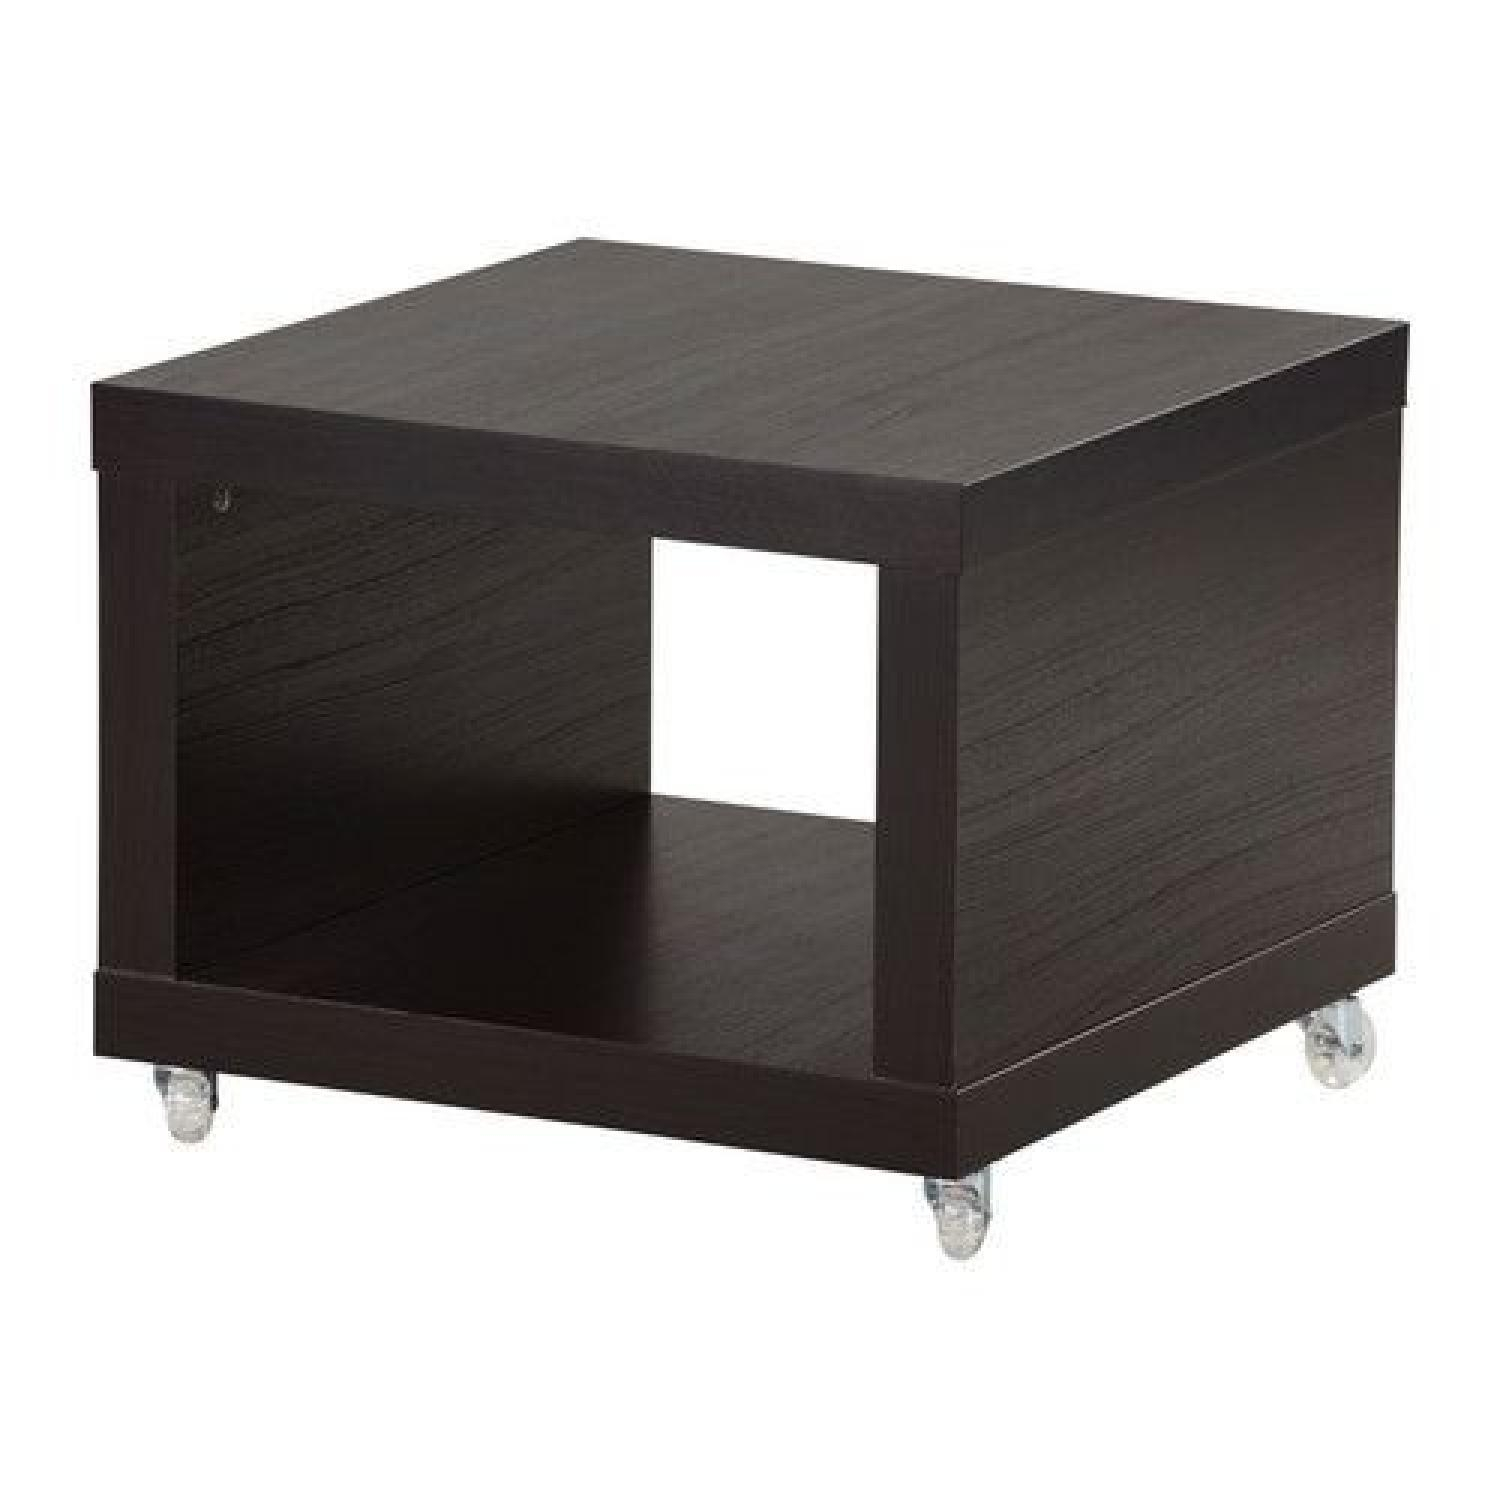 Ikea Coffee Table New At Photos of Beautiful